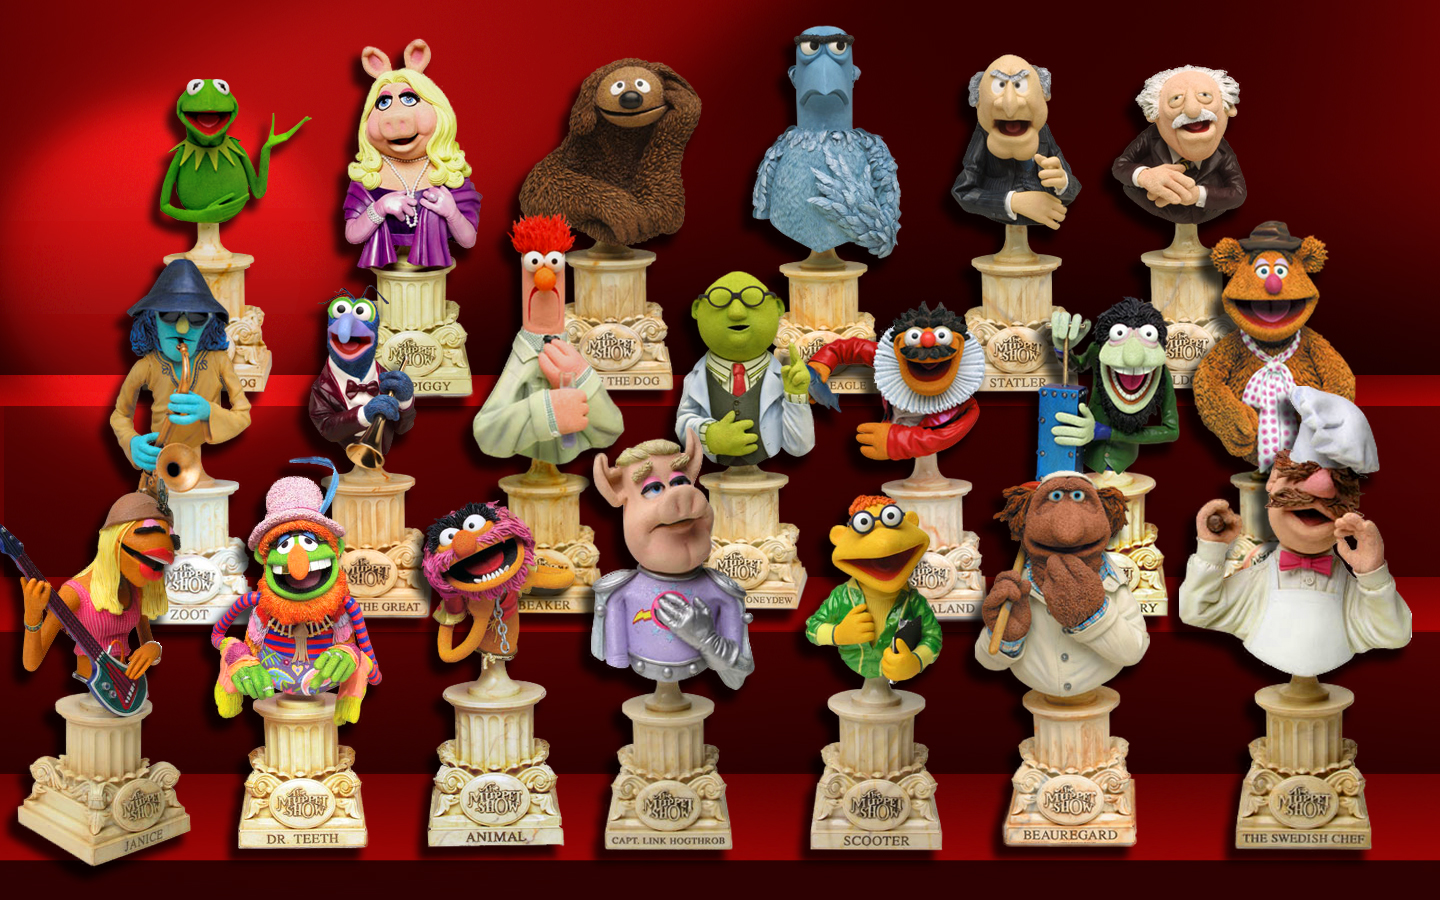 Sesame Street PVC figures  Tyco further Sesame Street PVC figures  Tyco further Tyco Toys Usa further Applause Muppet PVC Figures together with Fraggle Rock PVC figures  Schleich. on oscar and slimey figures